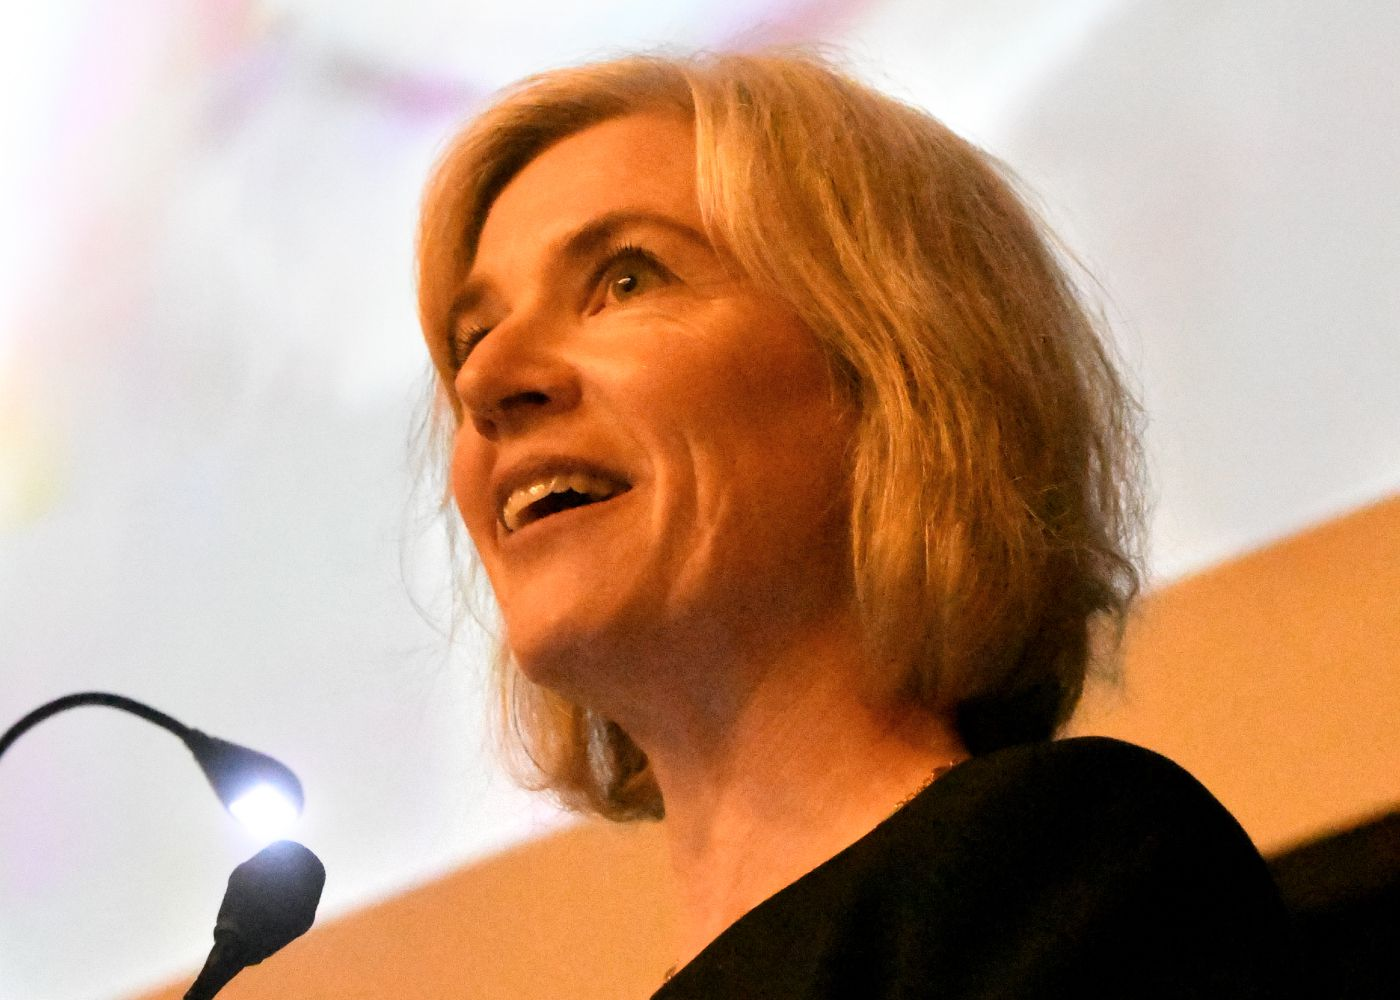 Jennifer Doudna speaking on stage at CRISPRcon